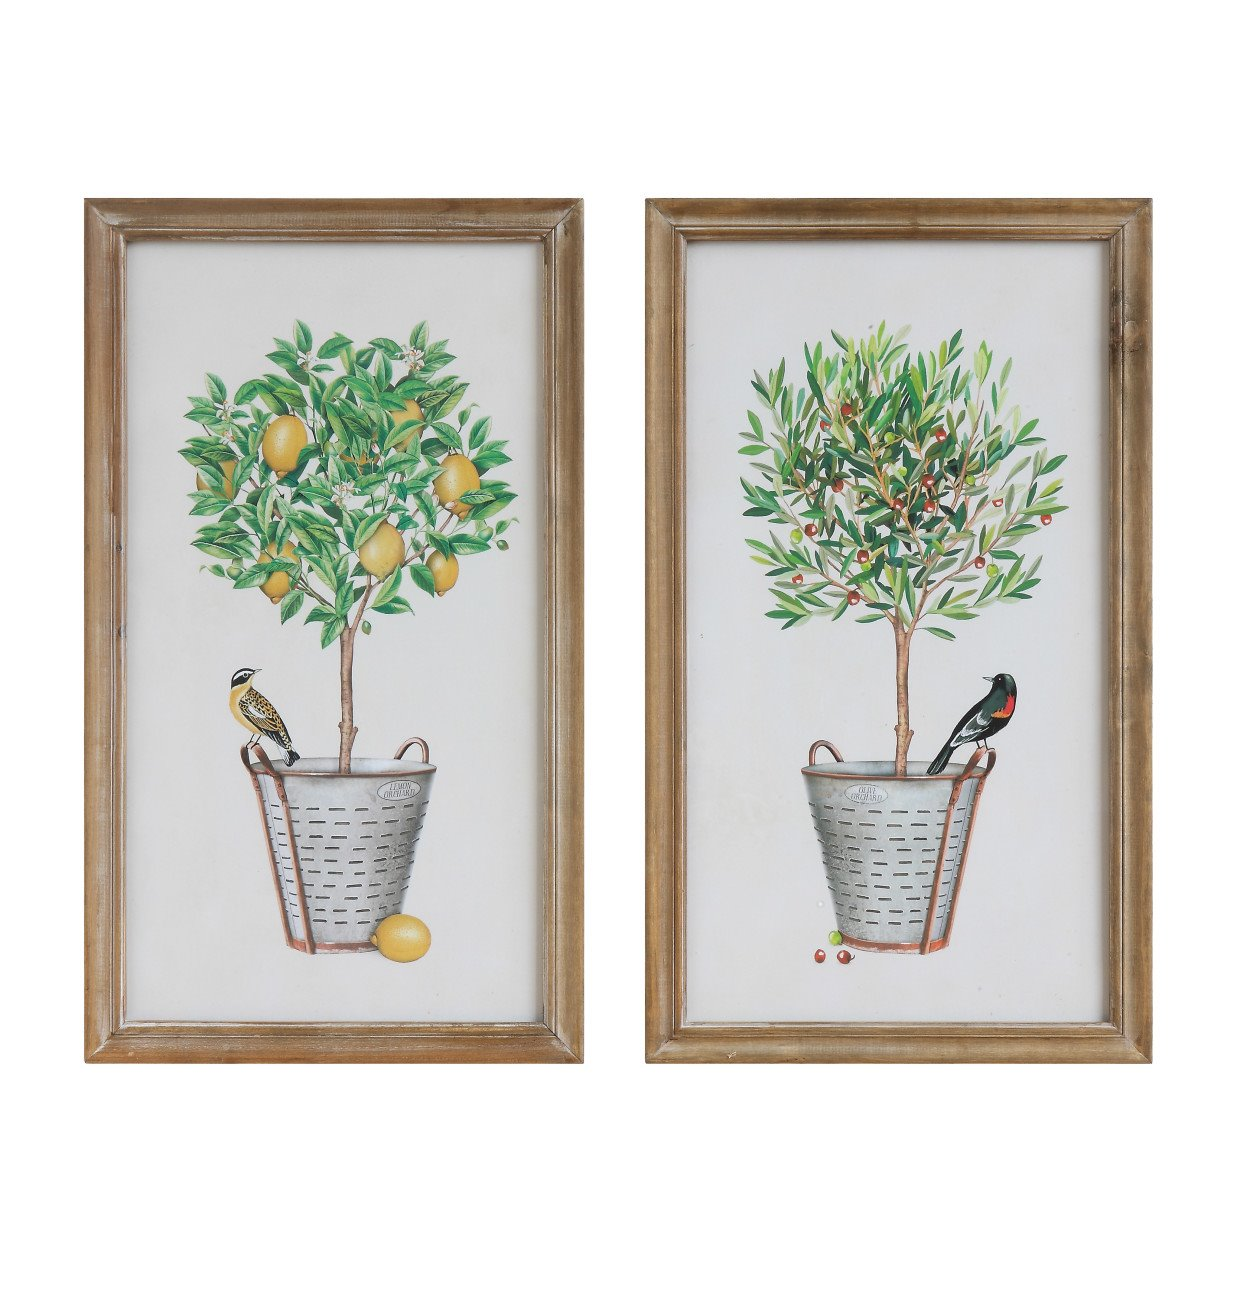 Wood Framed Wall Décor with Potted Plants & Birds (Set of 2 Designs)